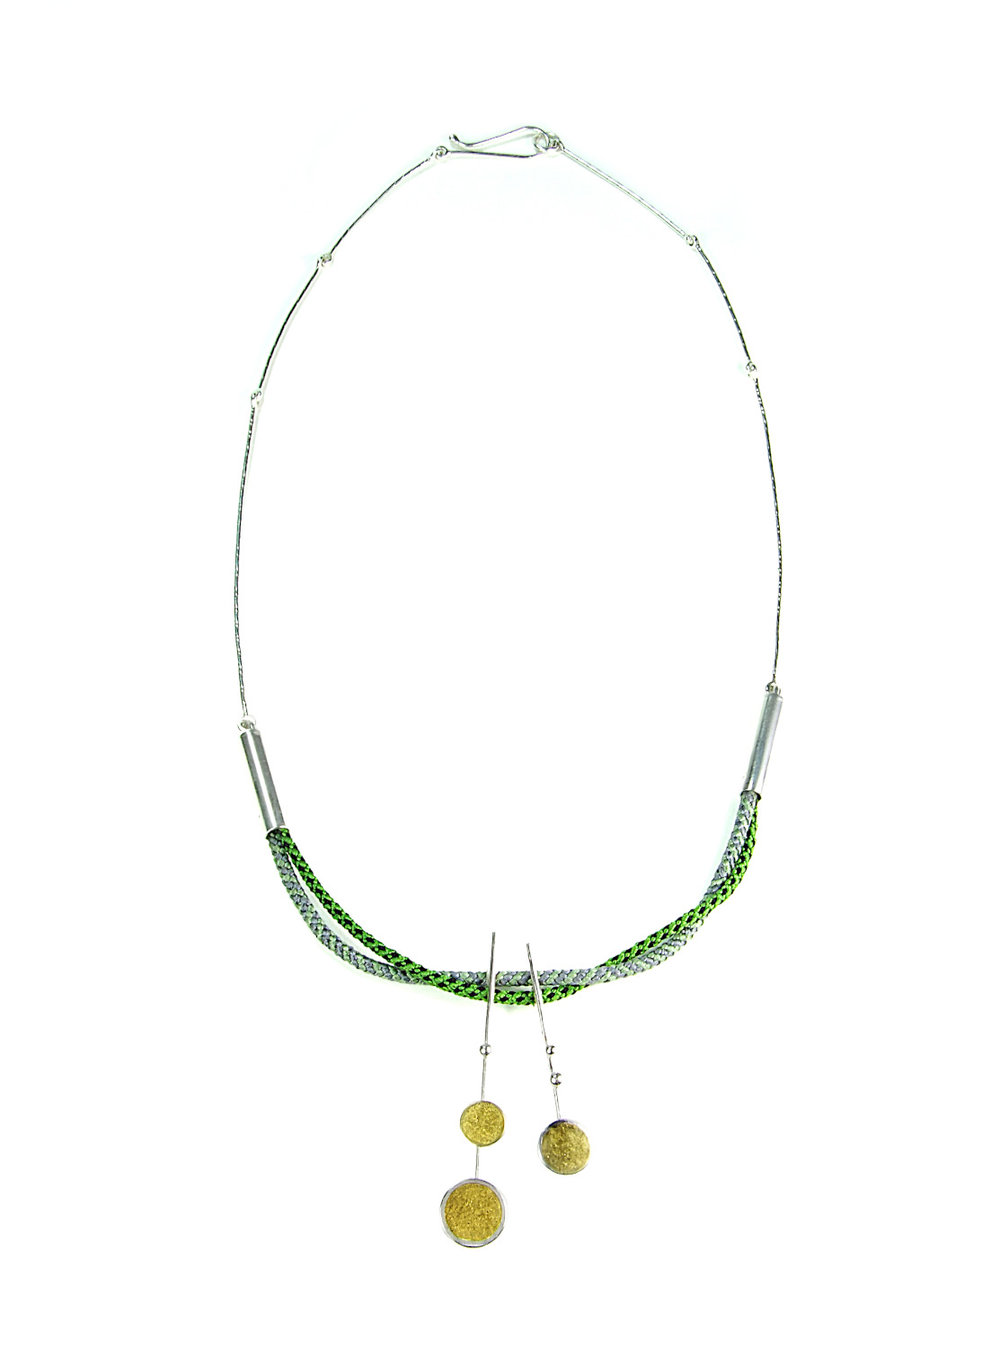 Overall view of the necklace.